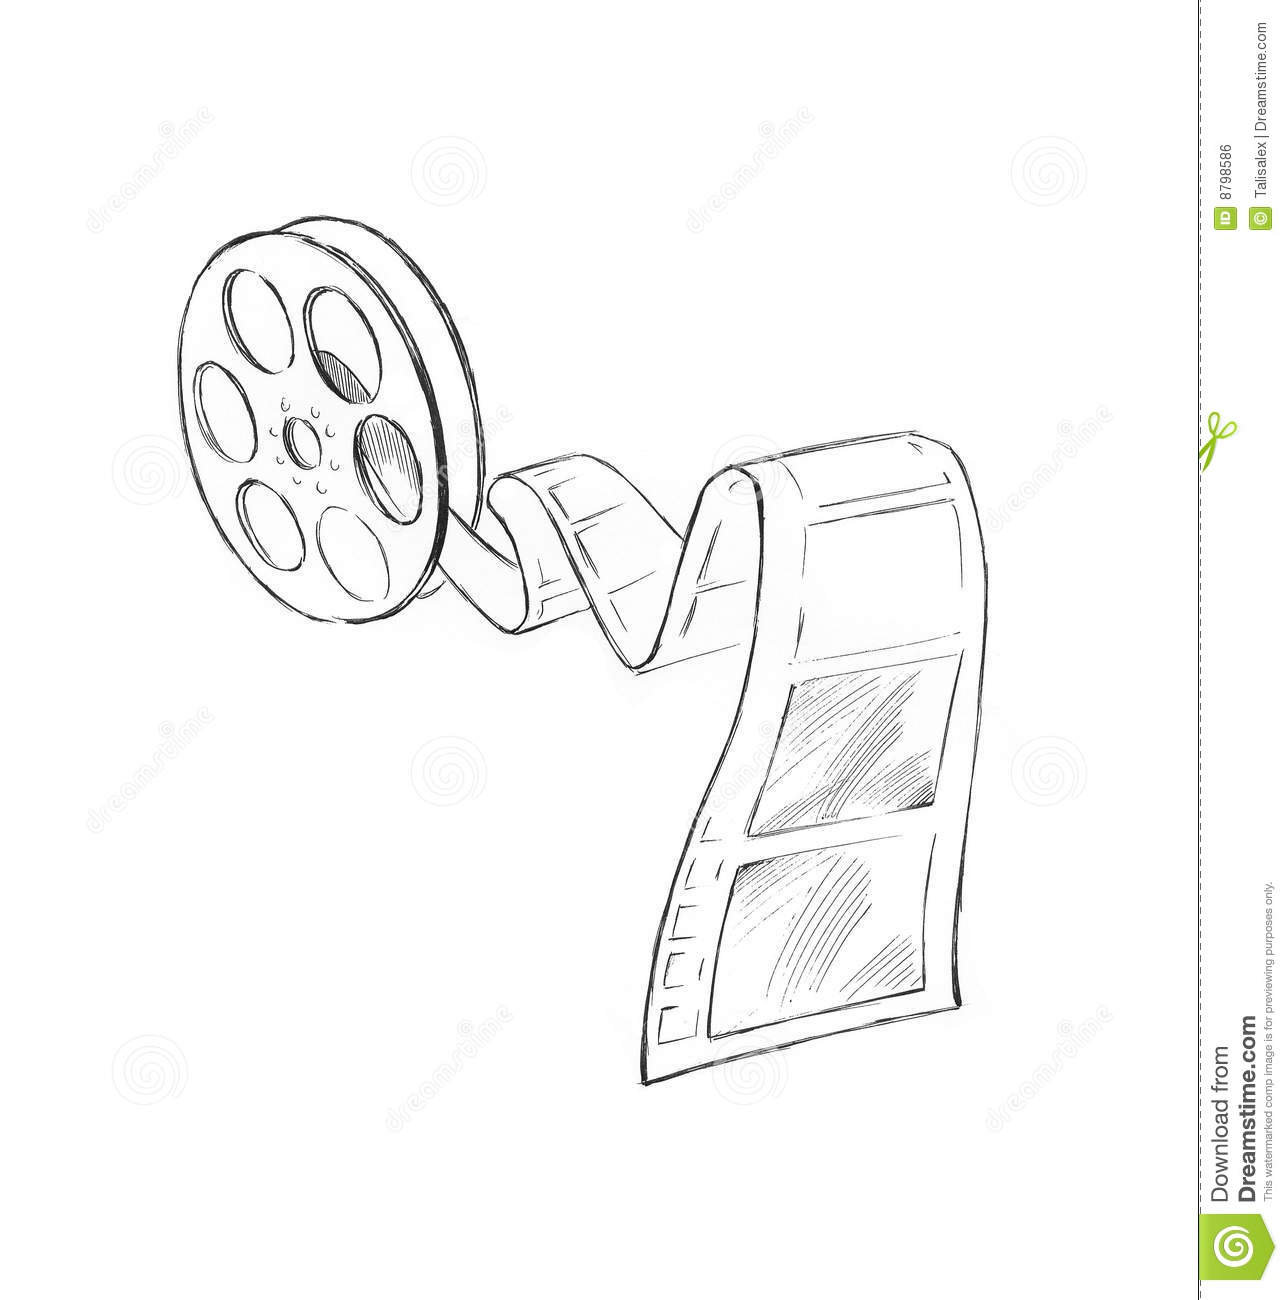 Sketch of movie strip royalty free stock image image for Sketch online free